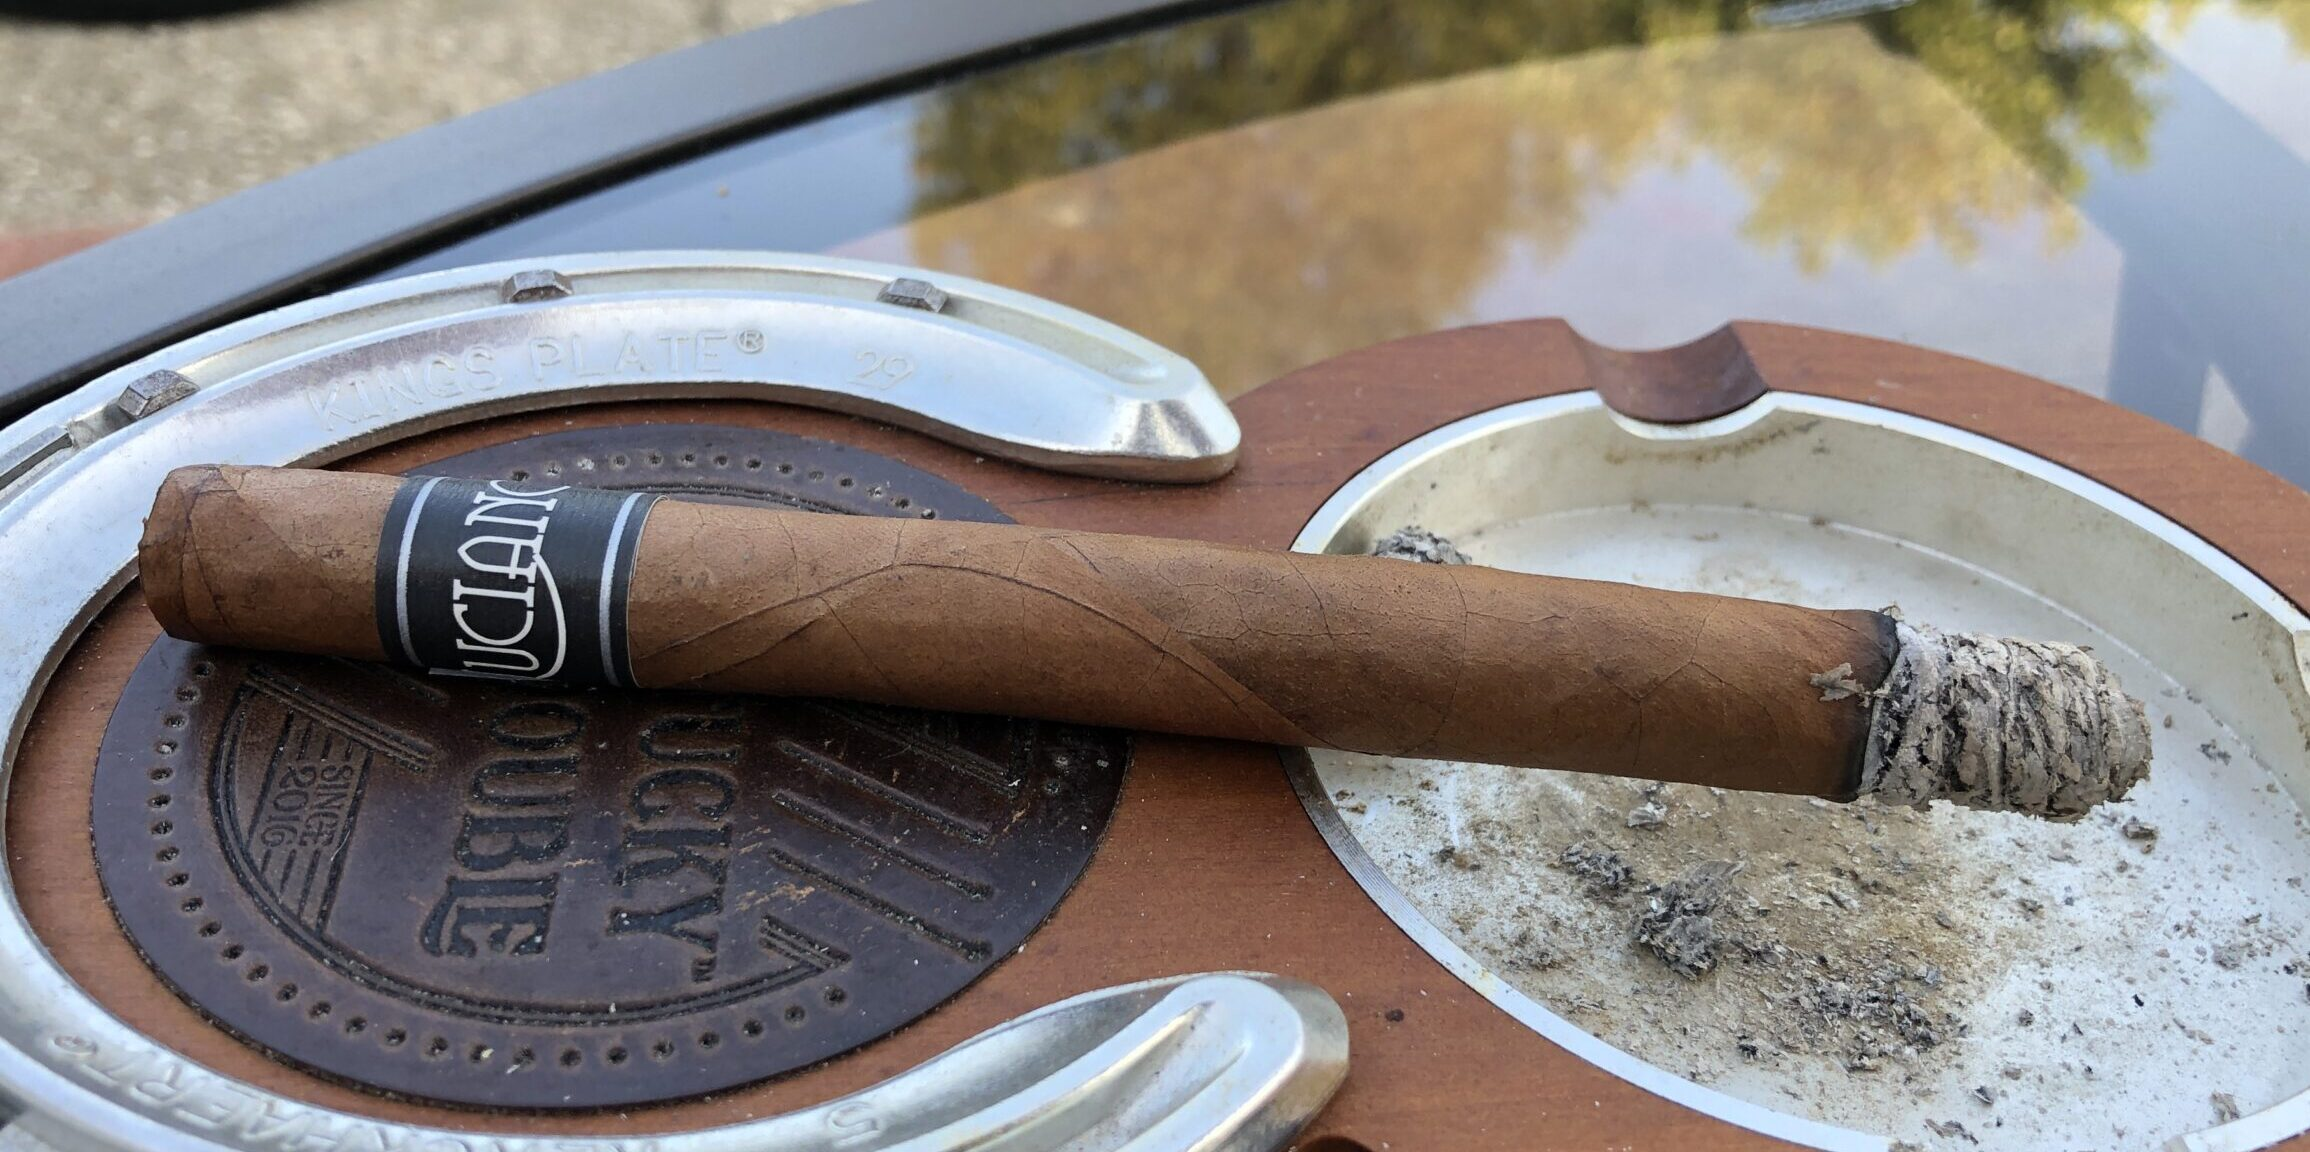 You are currently viewing Luciano The Dreamer Lancero by ACE Prime Cigar Review